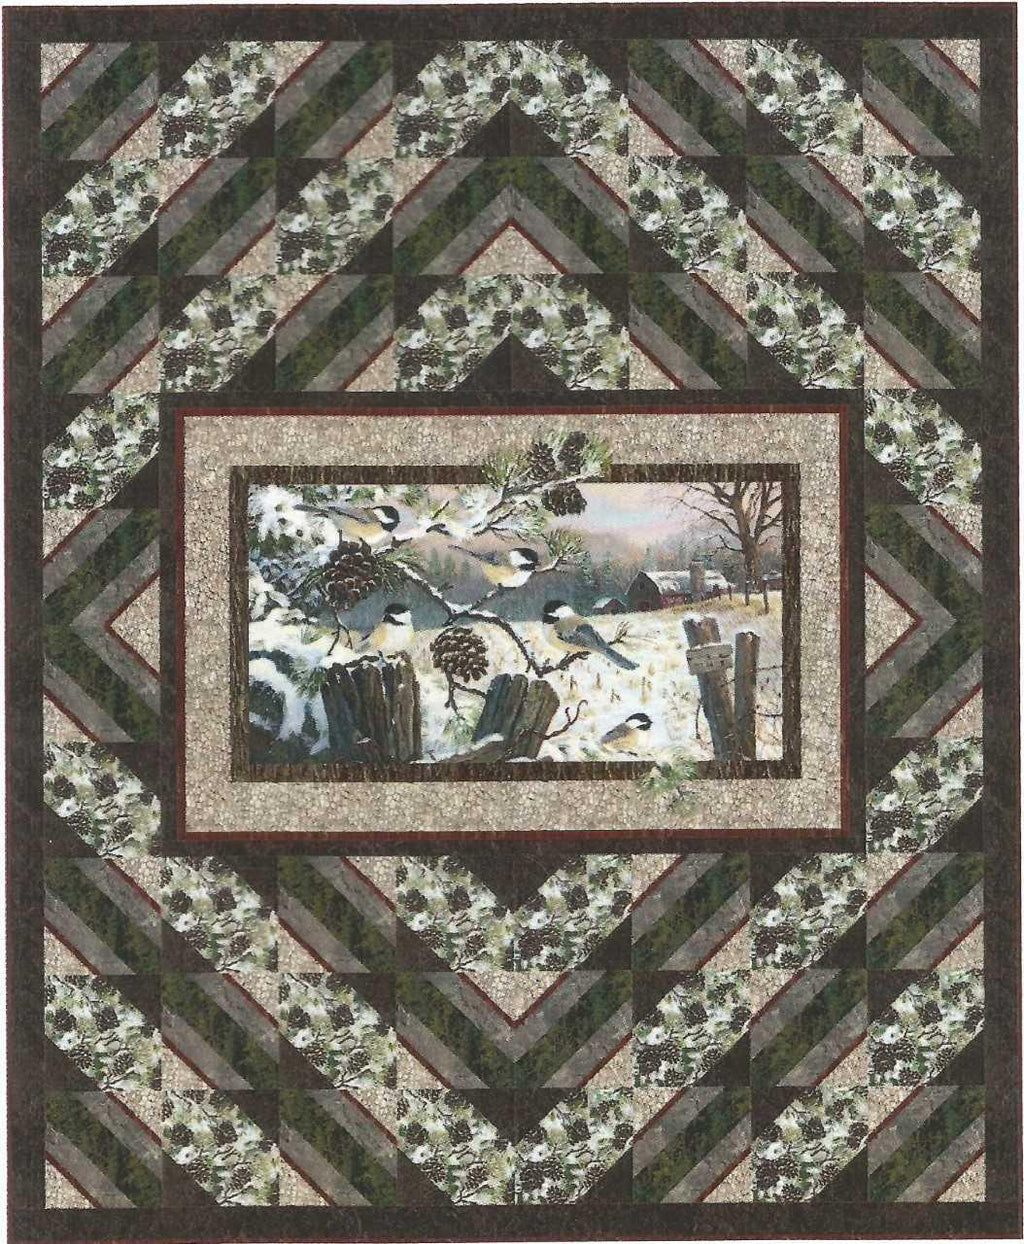 This quilt features winter chickadees, pine cones, and trees in a panel surrounded by diamond shaped borders.